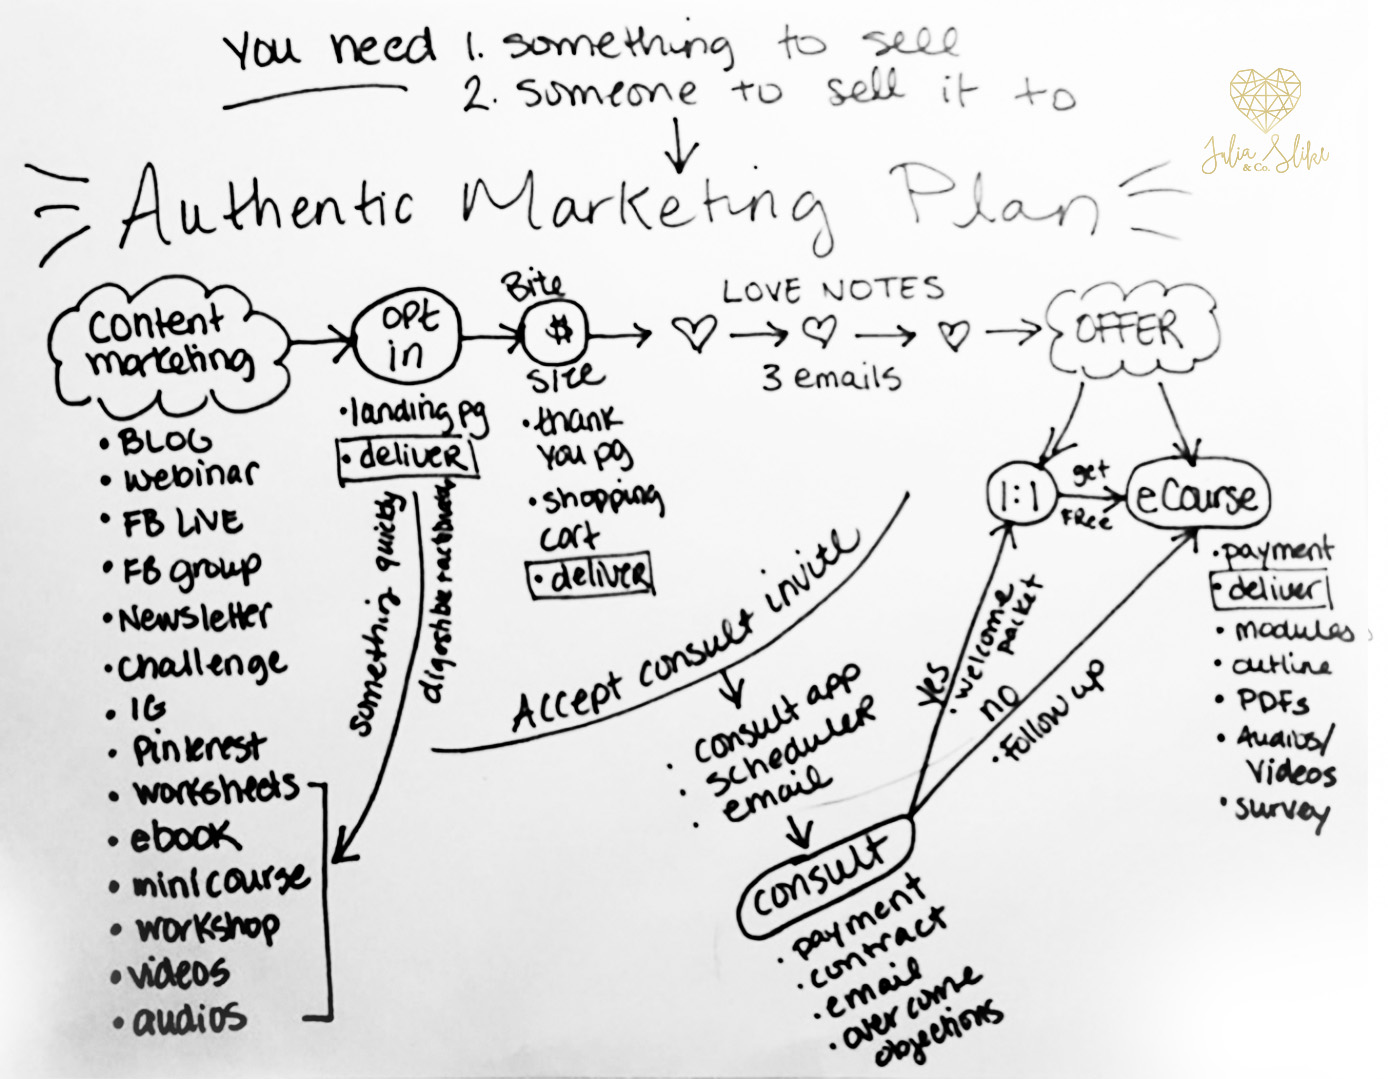 This is how my marketing mind works and I'll put it to work for YOU!